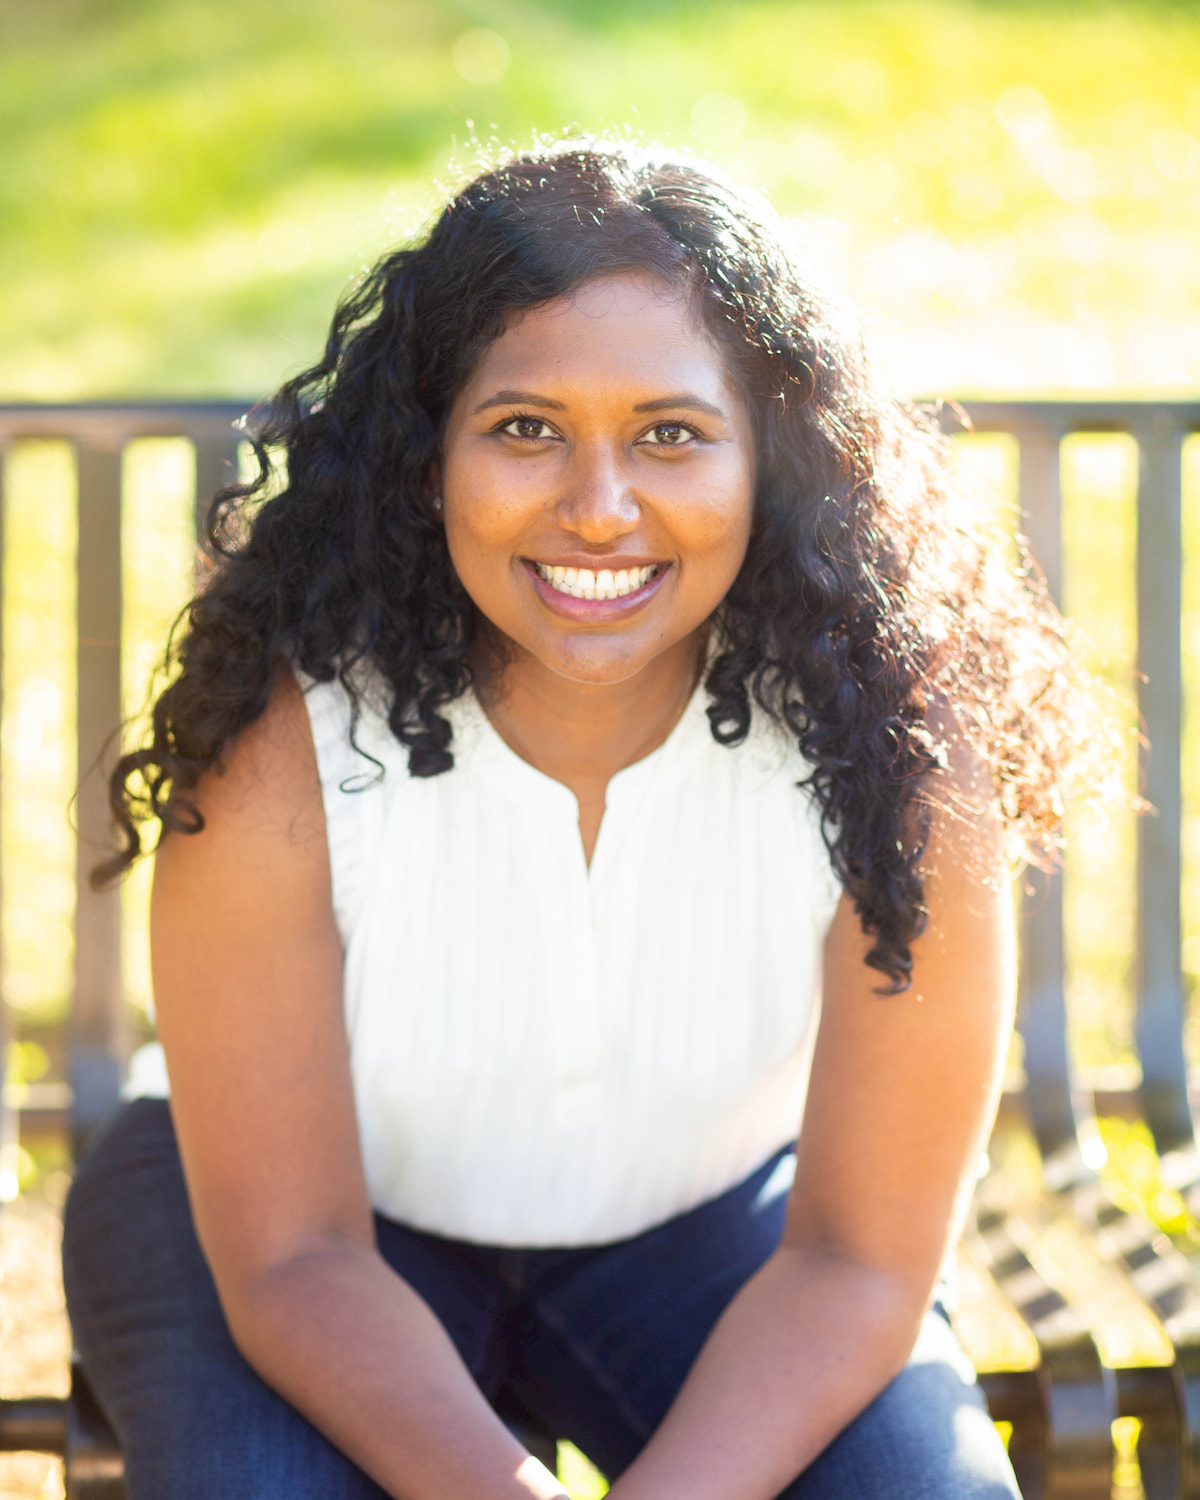 Srijanani Manohar, DMD - Dr. Srijanani Manohar is very excited to be in Walnut Creek and honored with the privilege of carrying on Dr.Fitzgerald's legacy in caring for his patients. Dr. Manohar is originally from India. She moved to the United States with her family to Santa Rosa, CA, before she attended Tufts University School of Dental Medicine. During her time there, she devoted herself to learning the foundational principles of dentistry. After  the wildfires, she and her husband have decided to settle in the family-friendly East bay area.